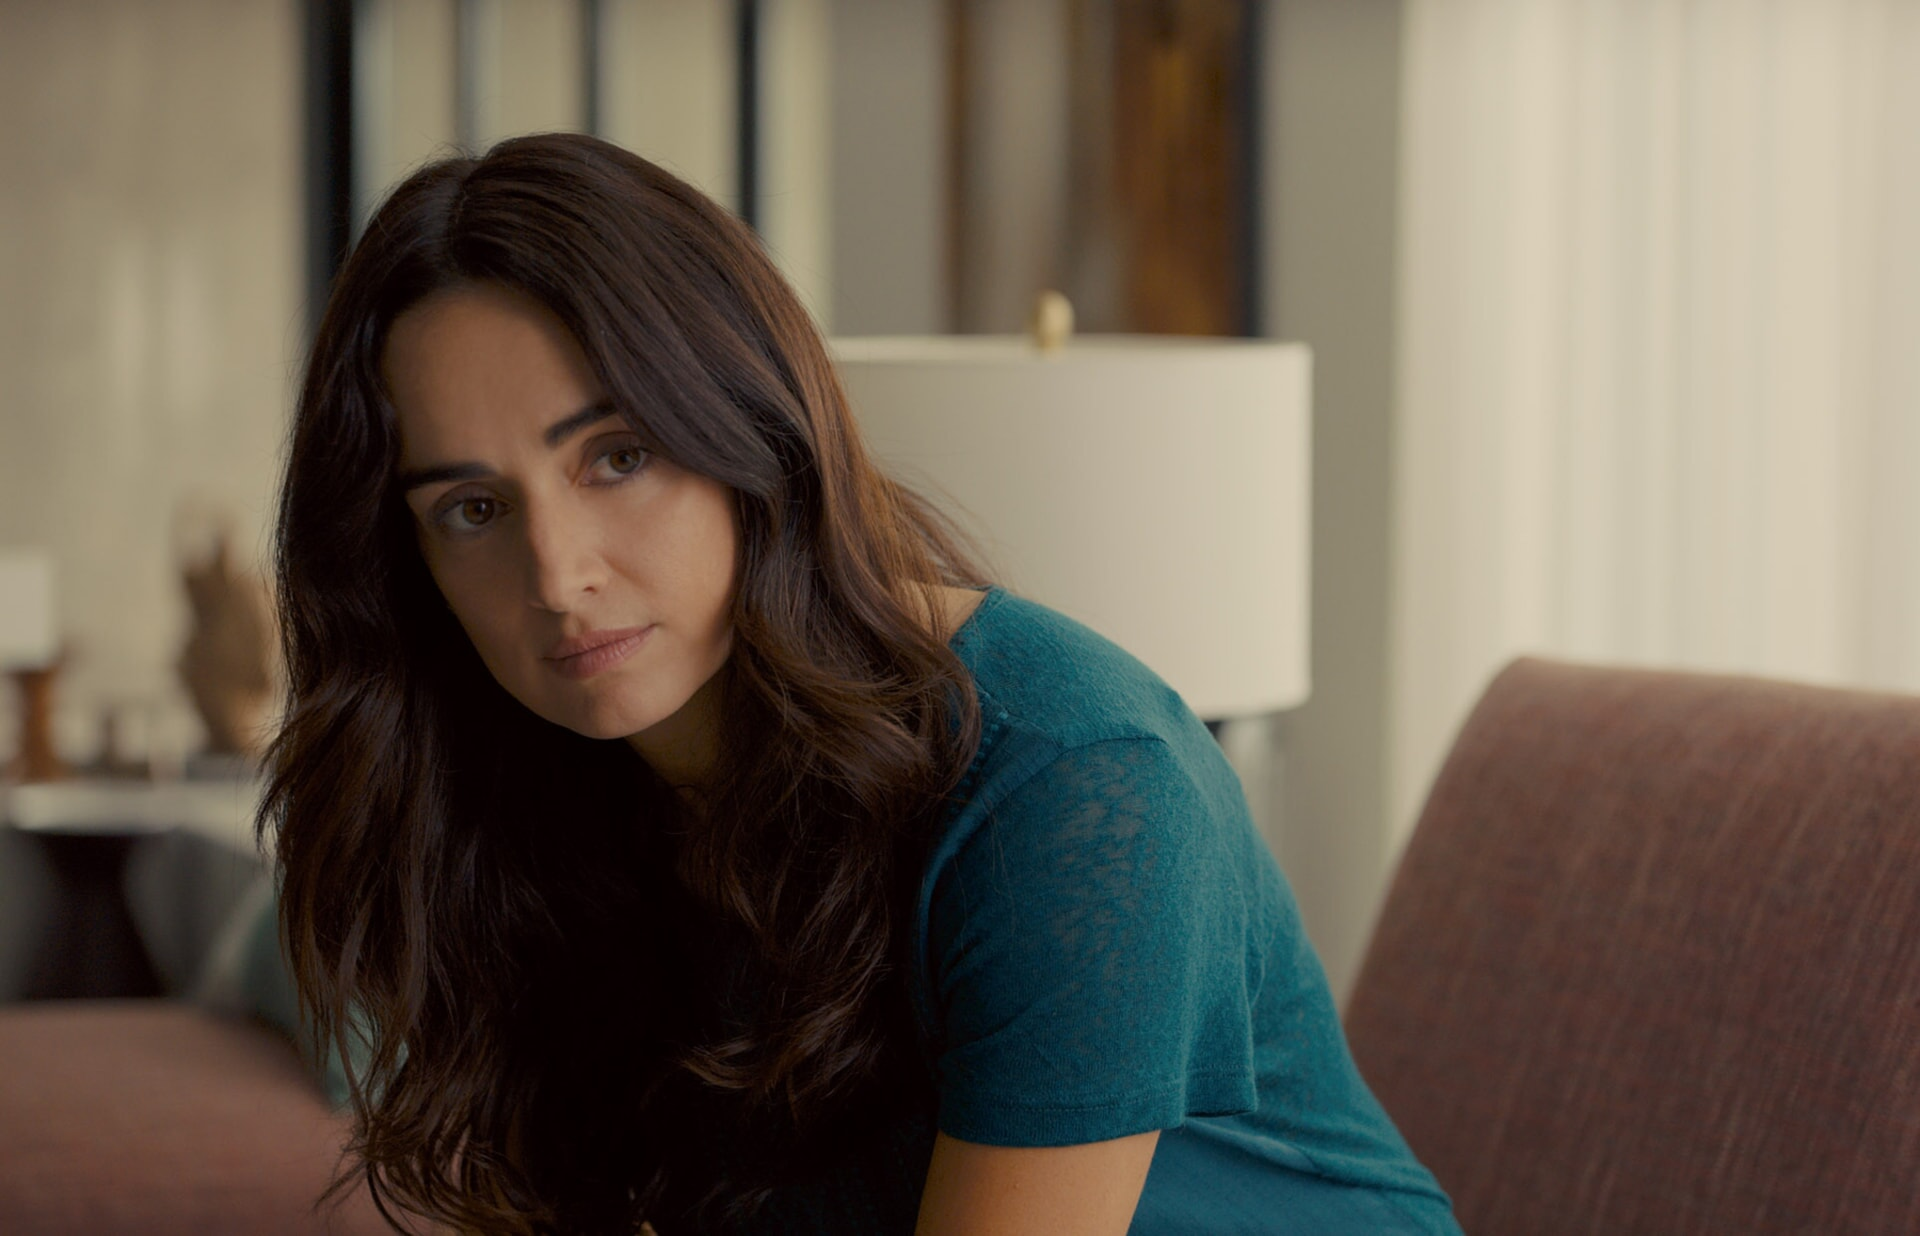 """ANA DE LA REGUERA as Carla in the Warner Bros. Pictures and Metro-Goldwyn-Mayer Pictures romantic drama """"EVERYTHING, EVERYTHING,"""" a Warner Bros. Pictures release."""